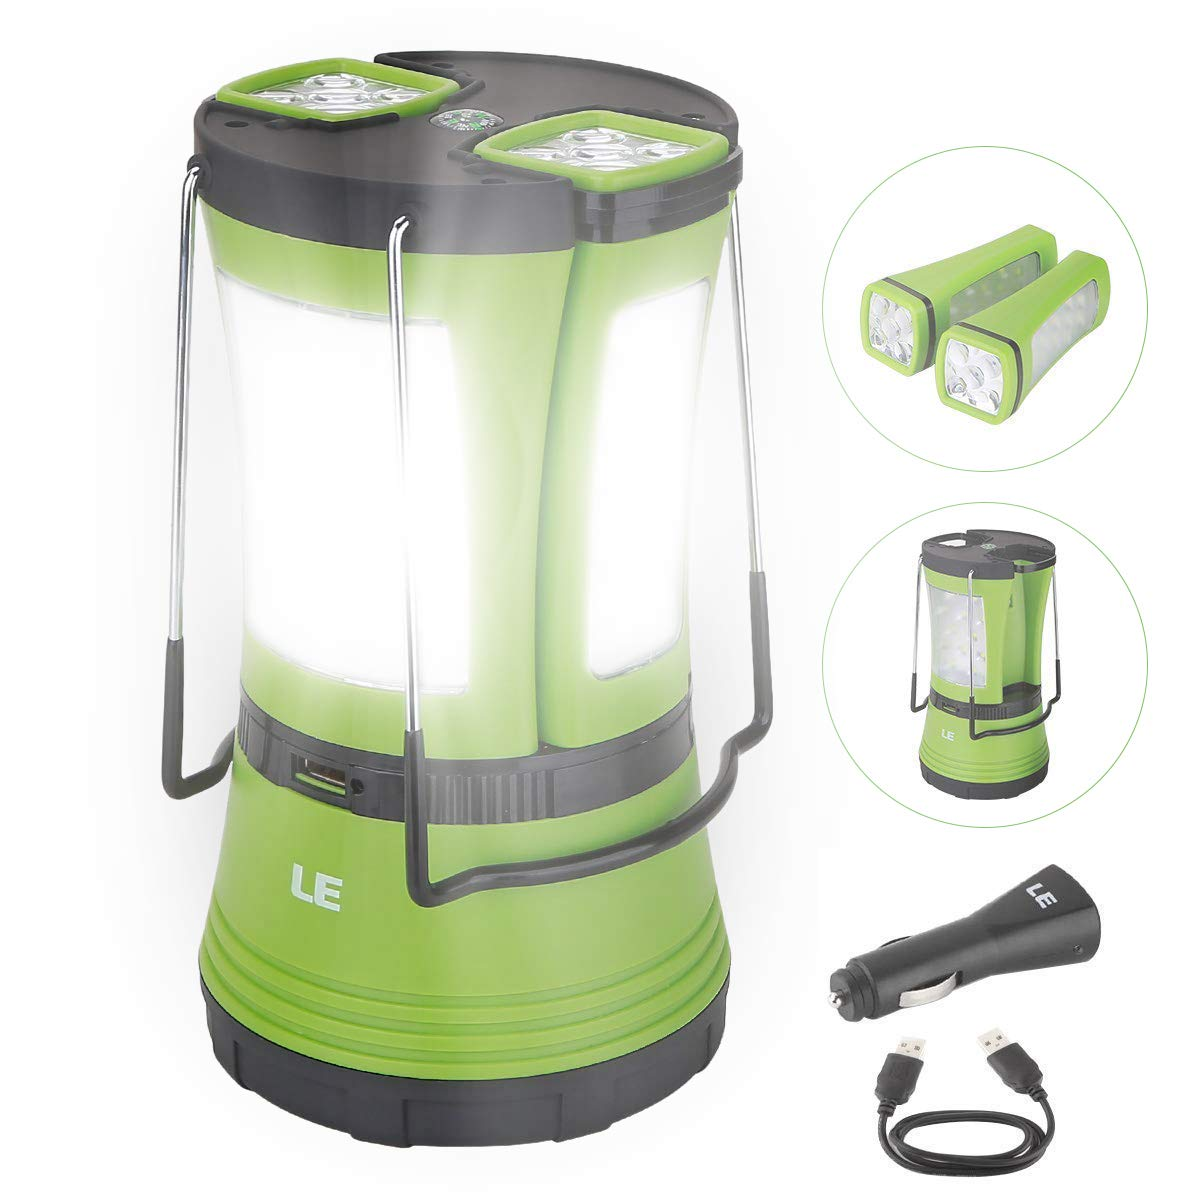 LE LED Camping Lantern Rechargeable, 600LM, Detachable Flashlight, Perfect Lantern Flashlight for Hurricane Emergency, Hiking, Fishing and More, USB Cable and Car Charger Included by Lighting EVER